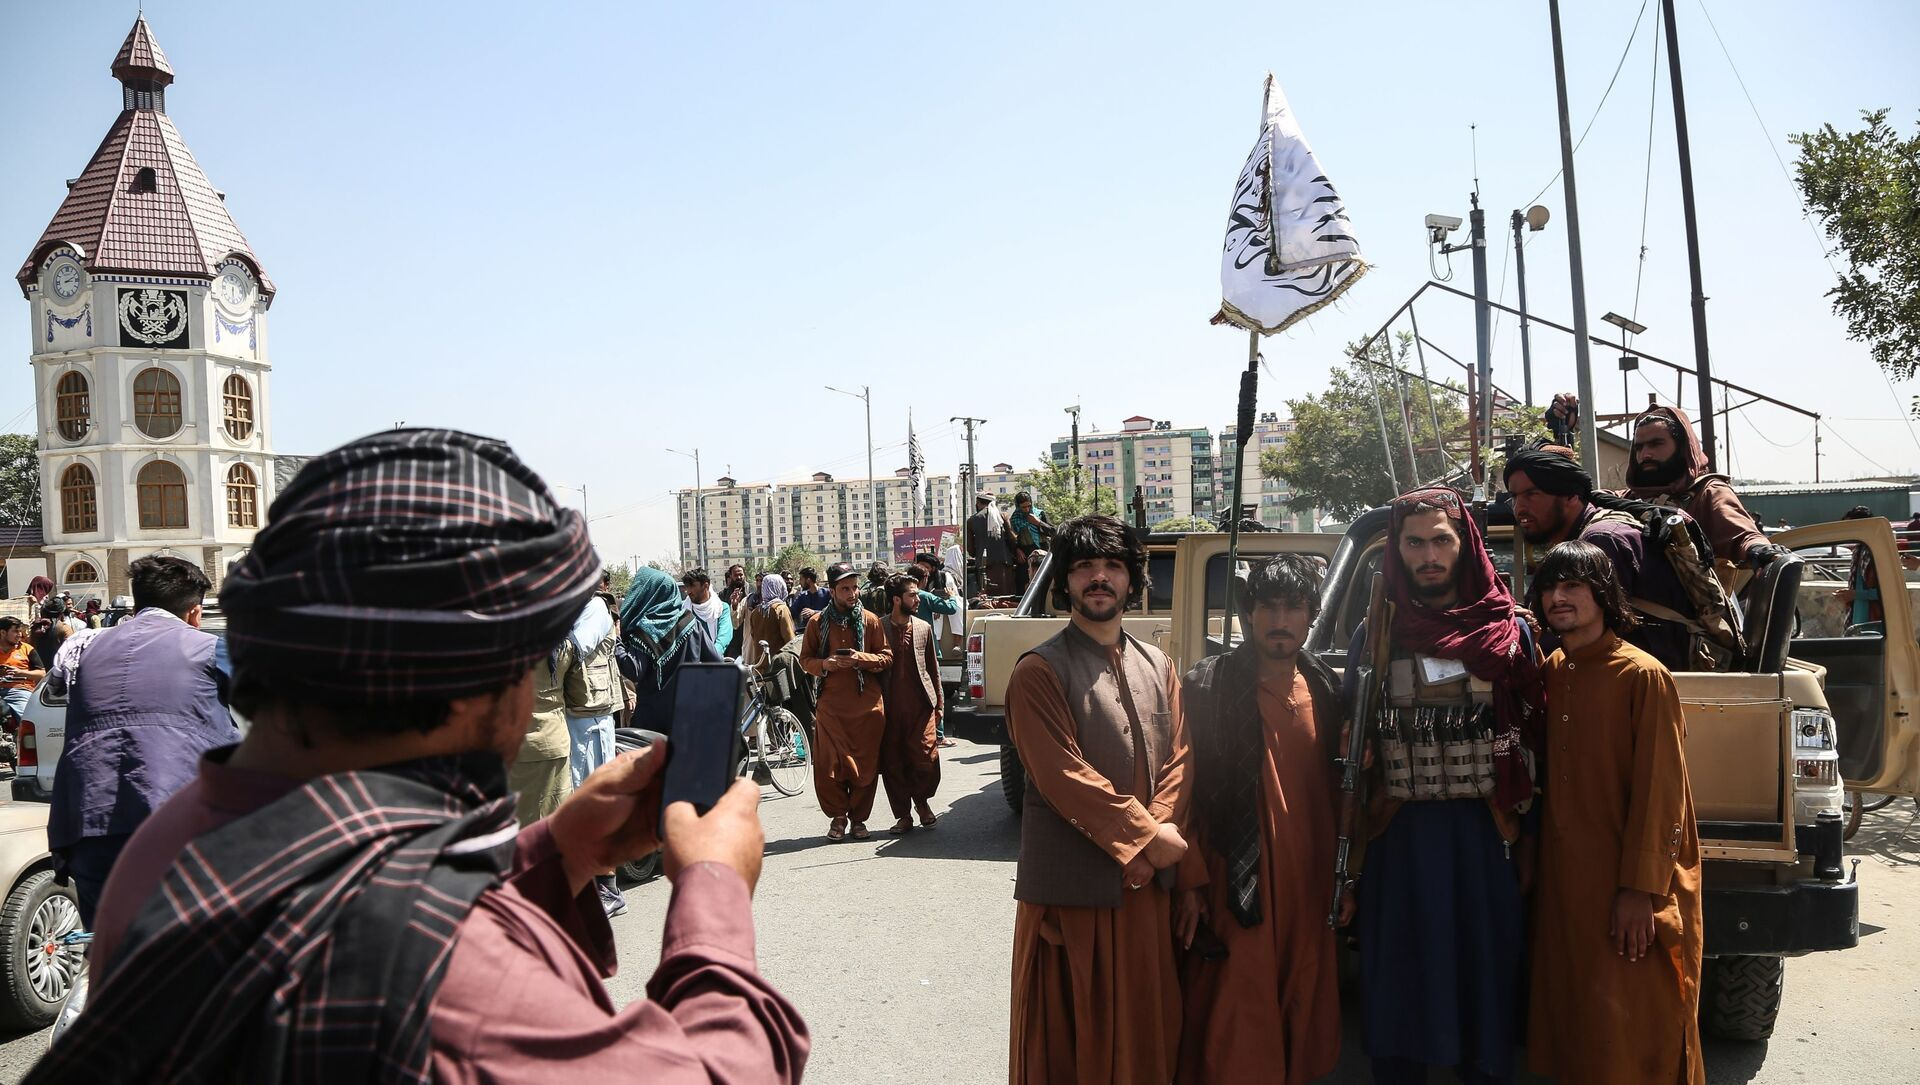 Taliban fighters (a terrorist group banned in Russia) pose for a photo in Kabul, Afghanistan.  - Sputnik France, 1920, 27.08.2021